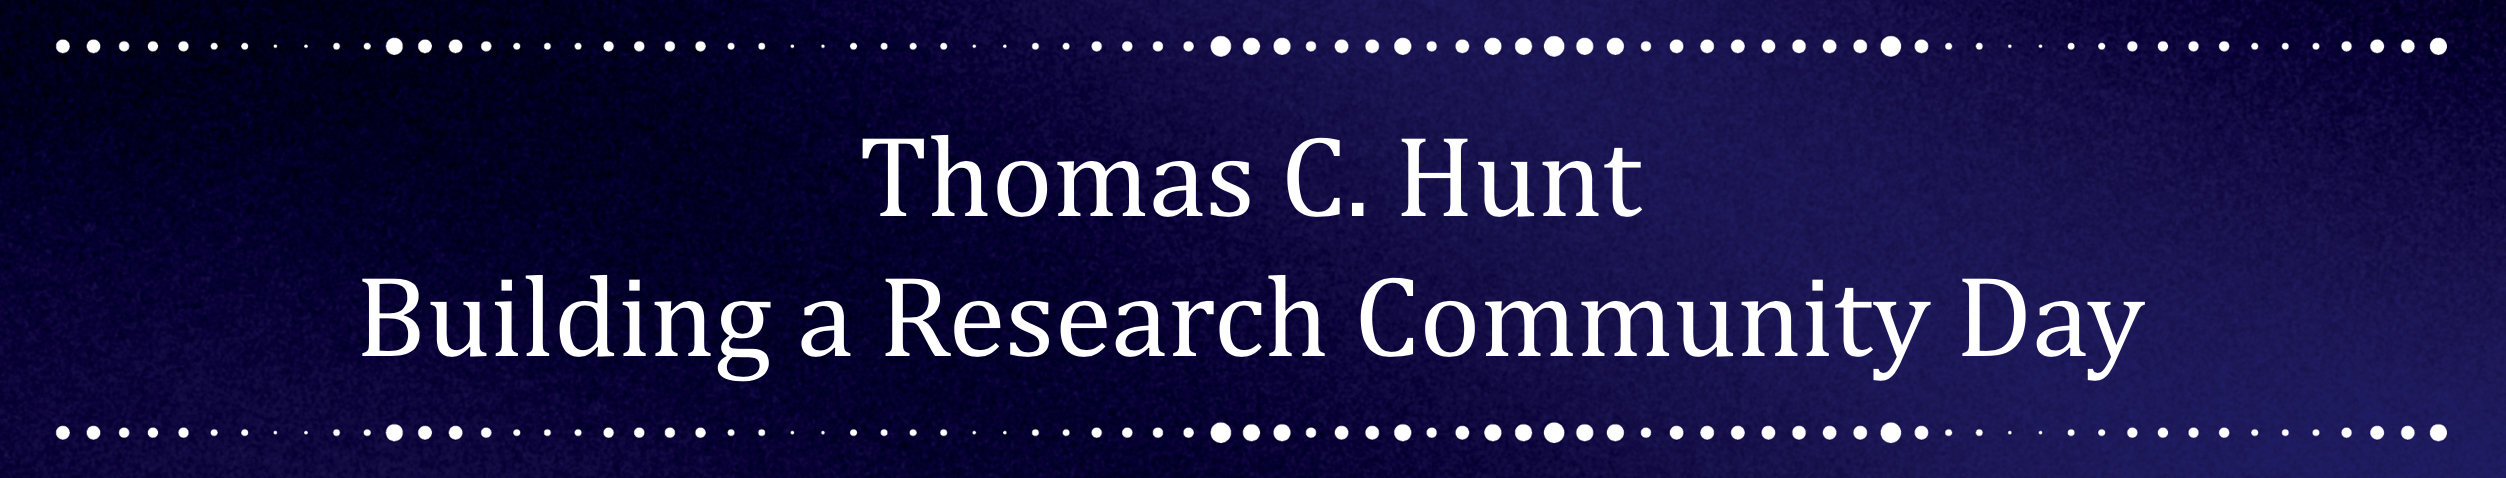 Thomas C. Hunt Building a Research Community Day